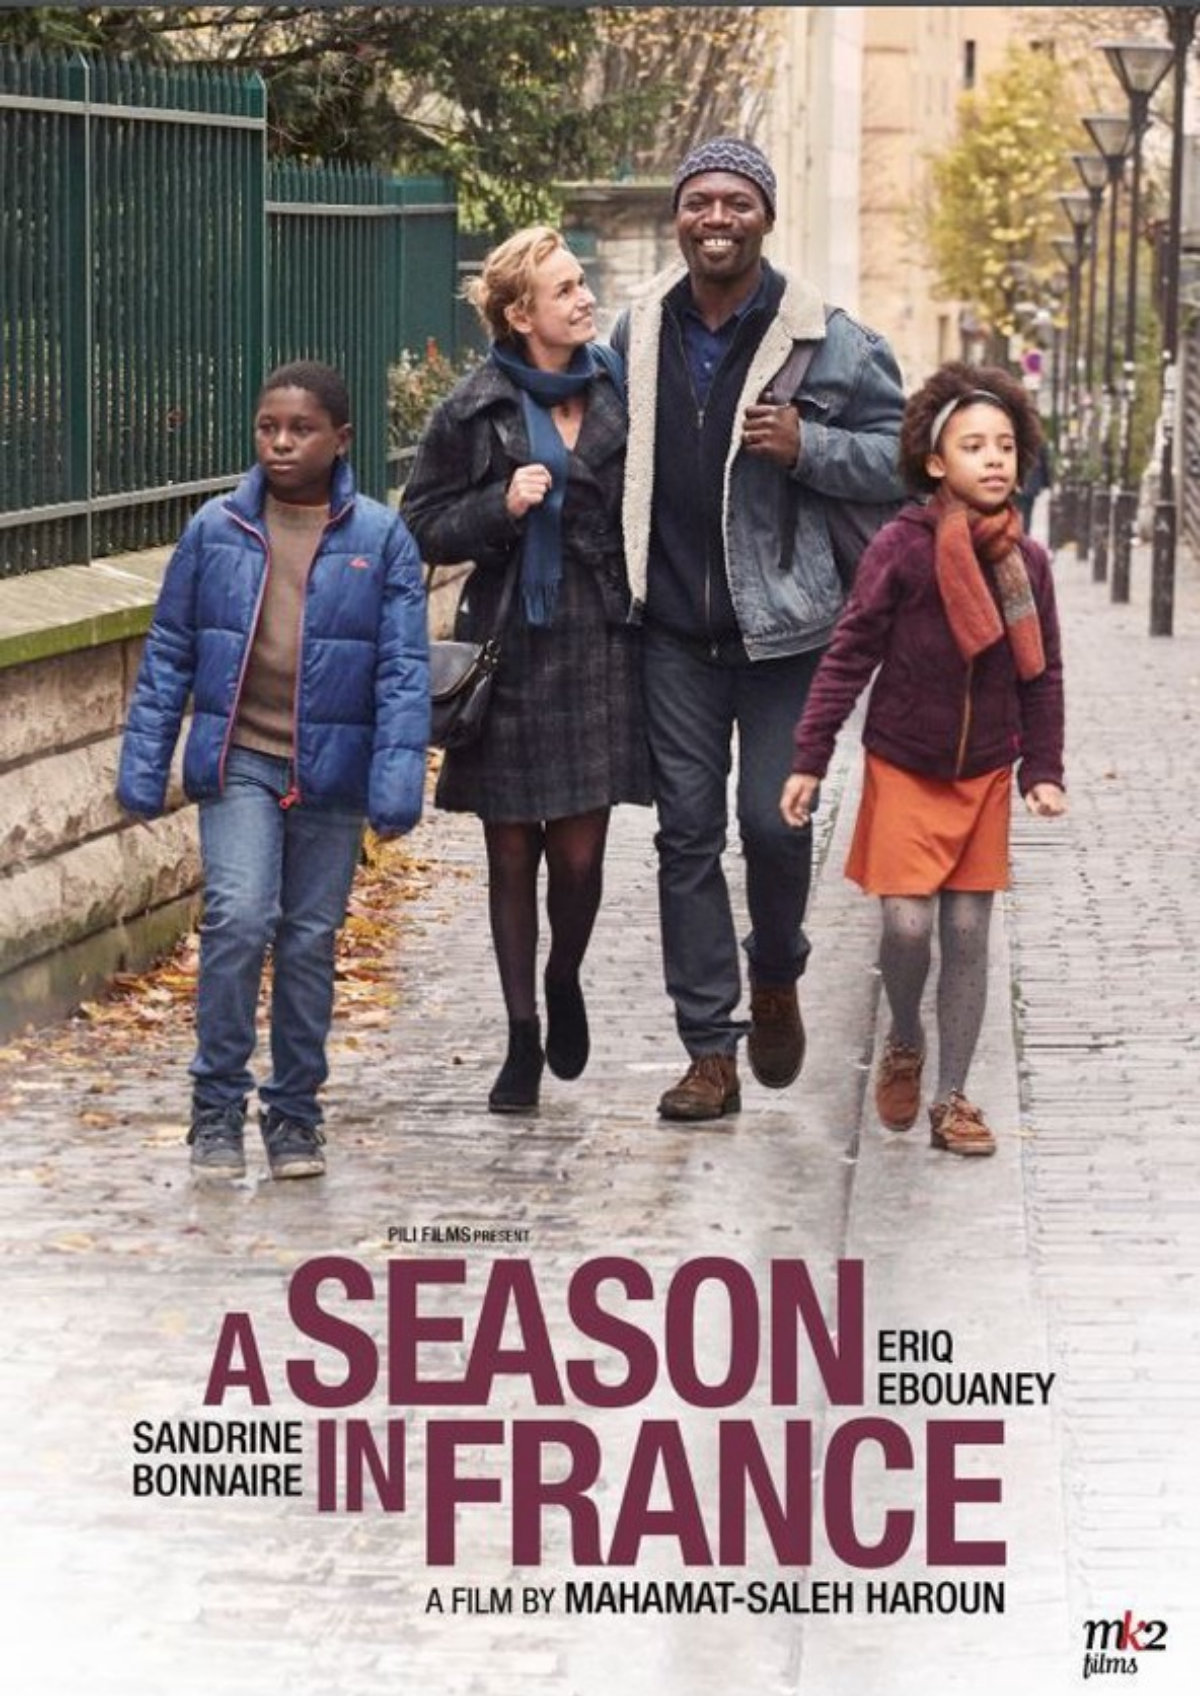 'A Season In France' movie poster